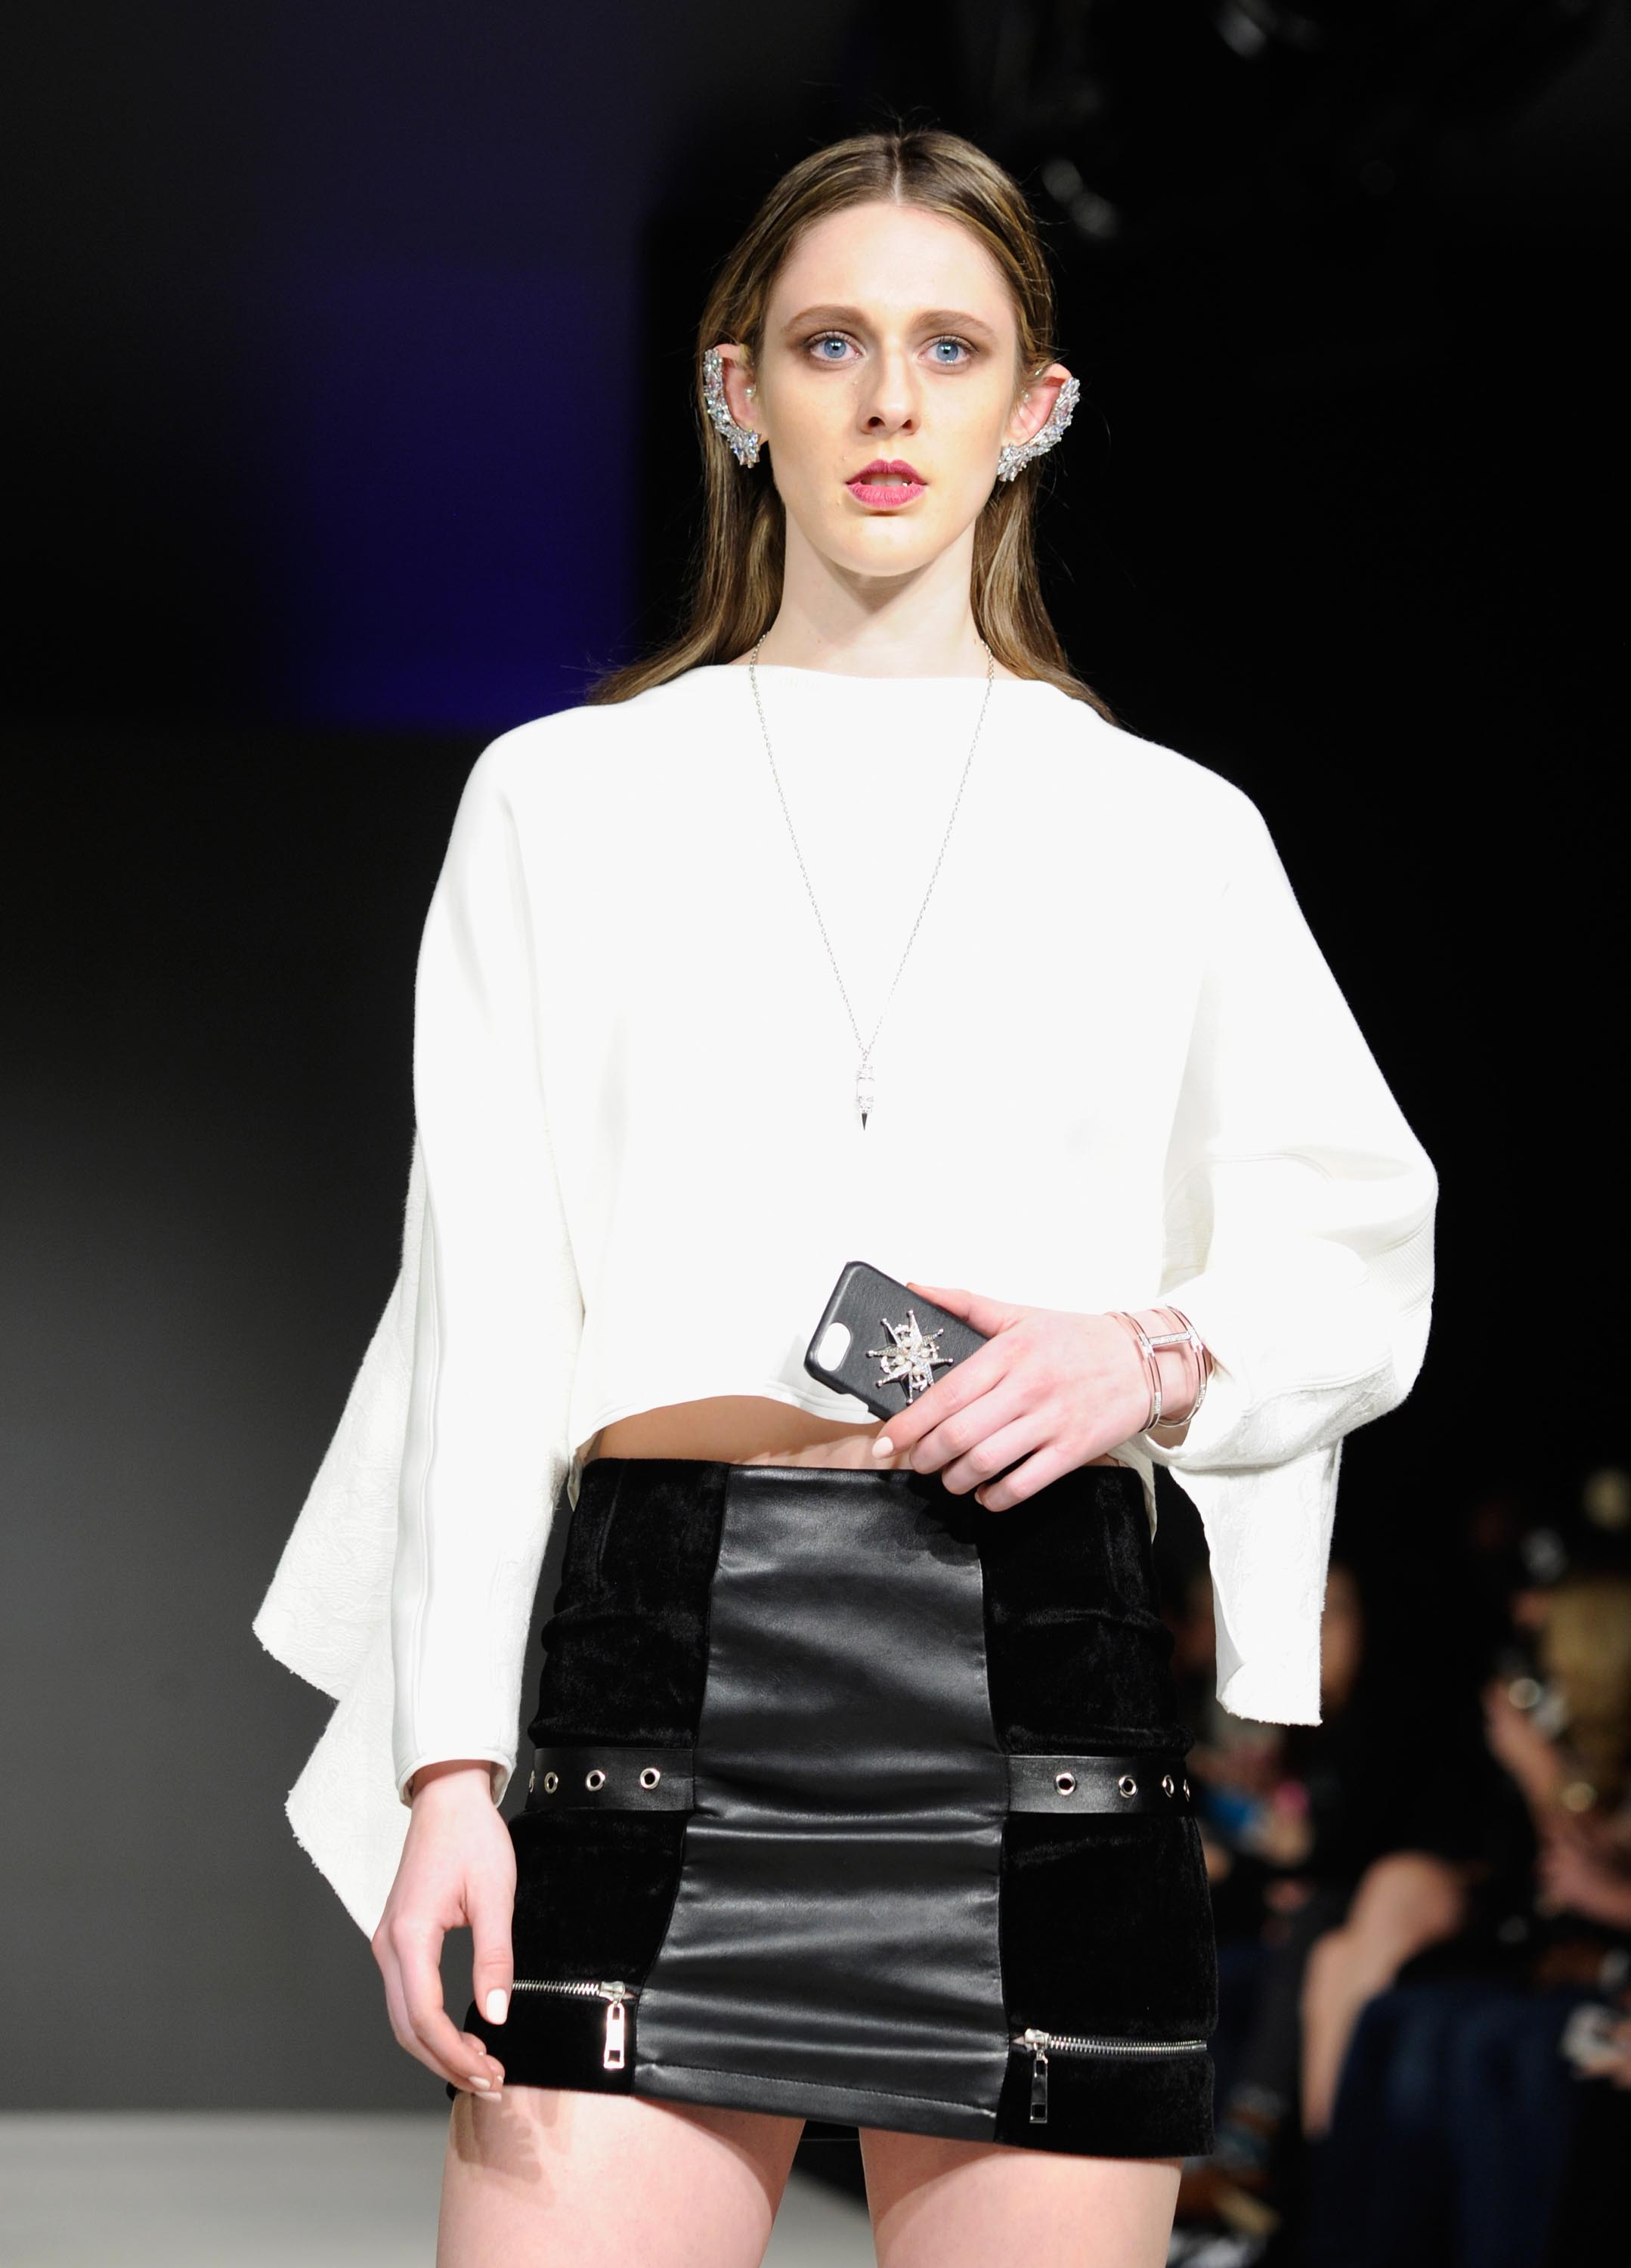 Suzanne bell fashion vancouver